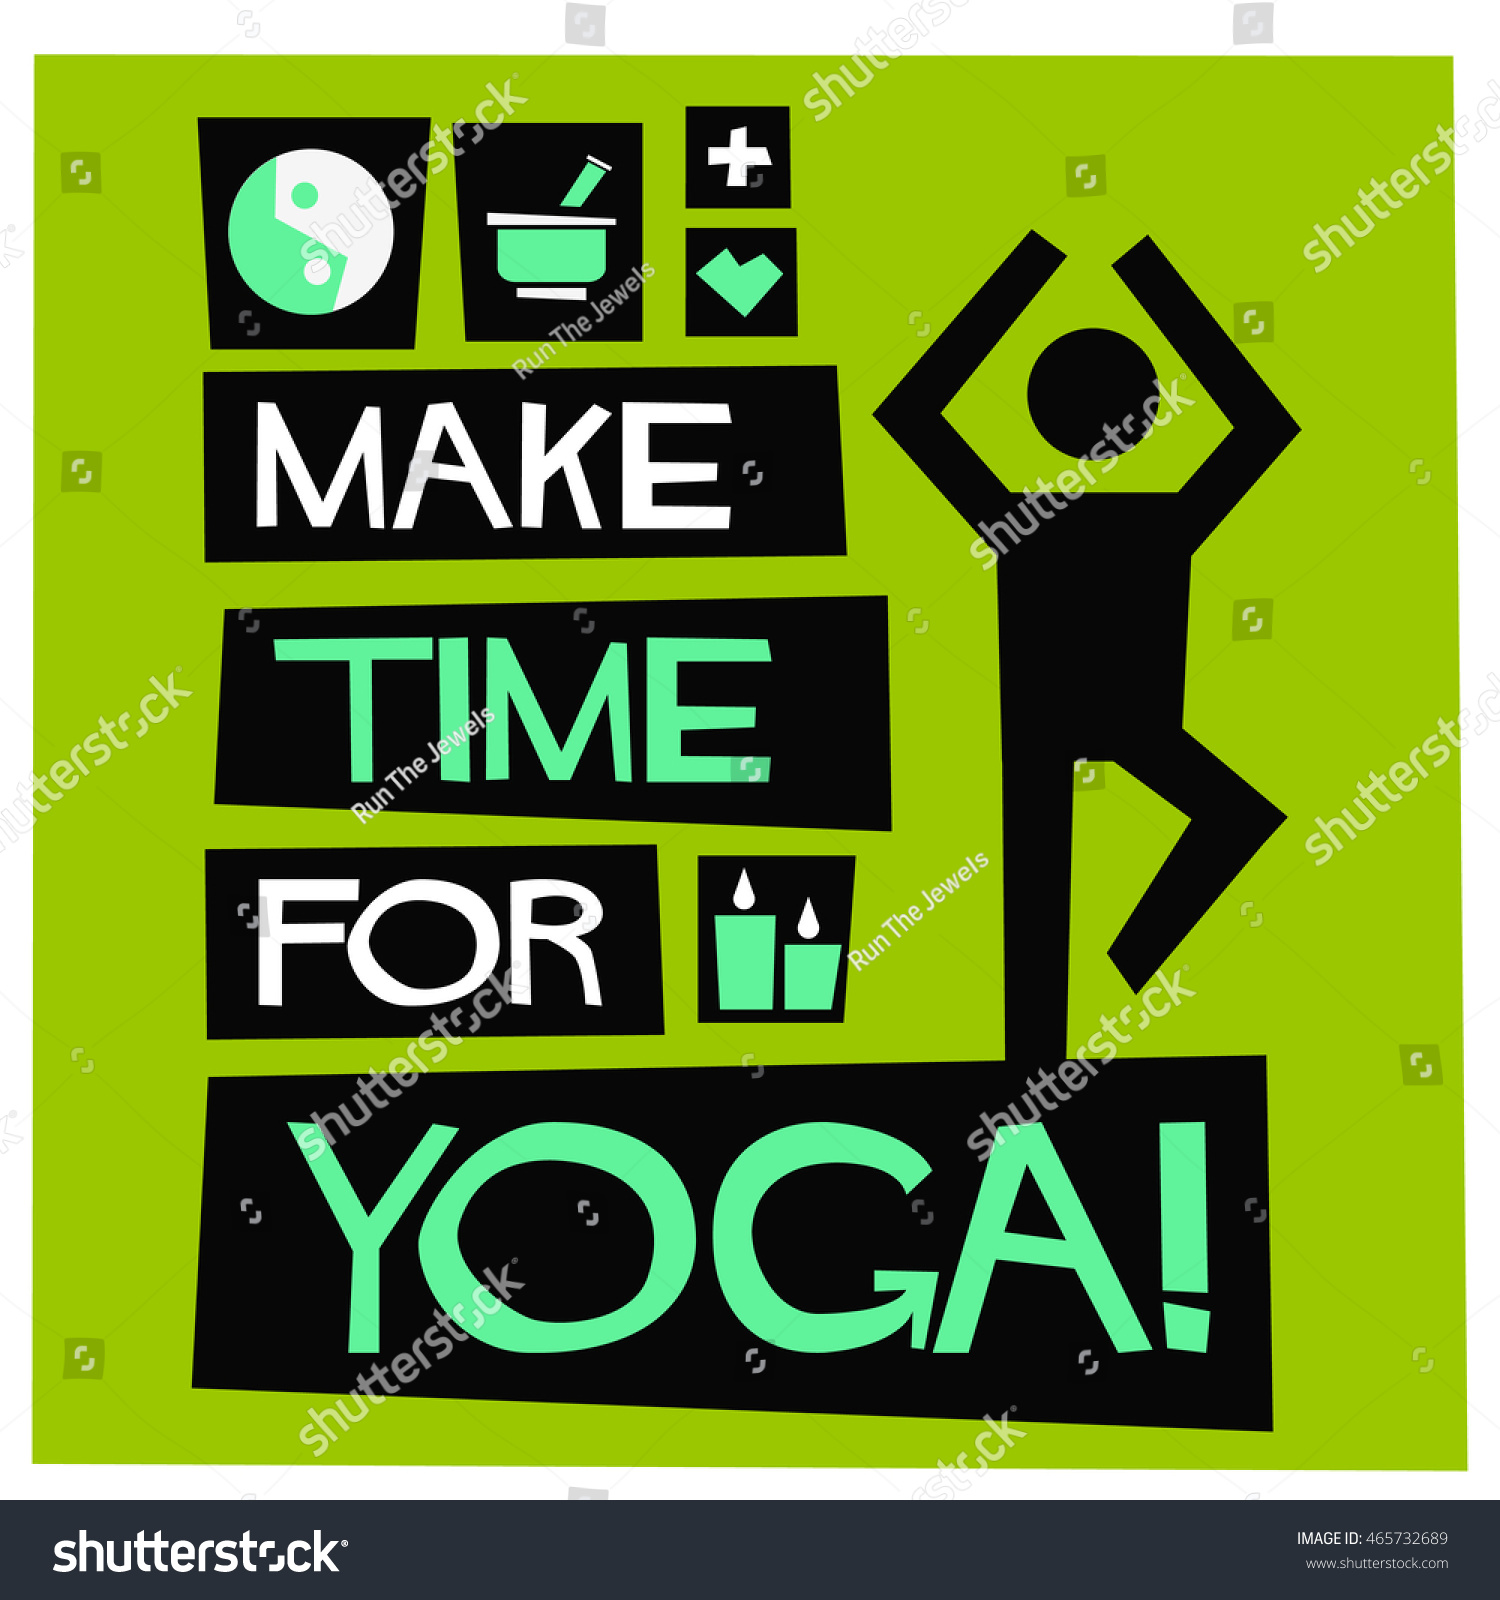 Poster design yoga - Make Time For Yoga Flat Style Vector Illustration Quote Poster Design